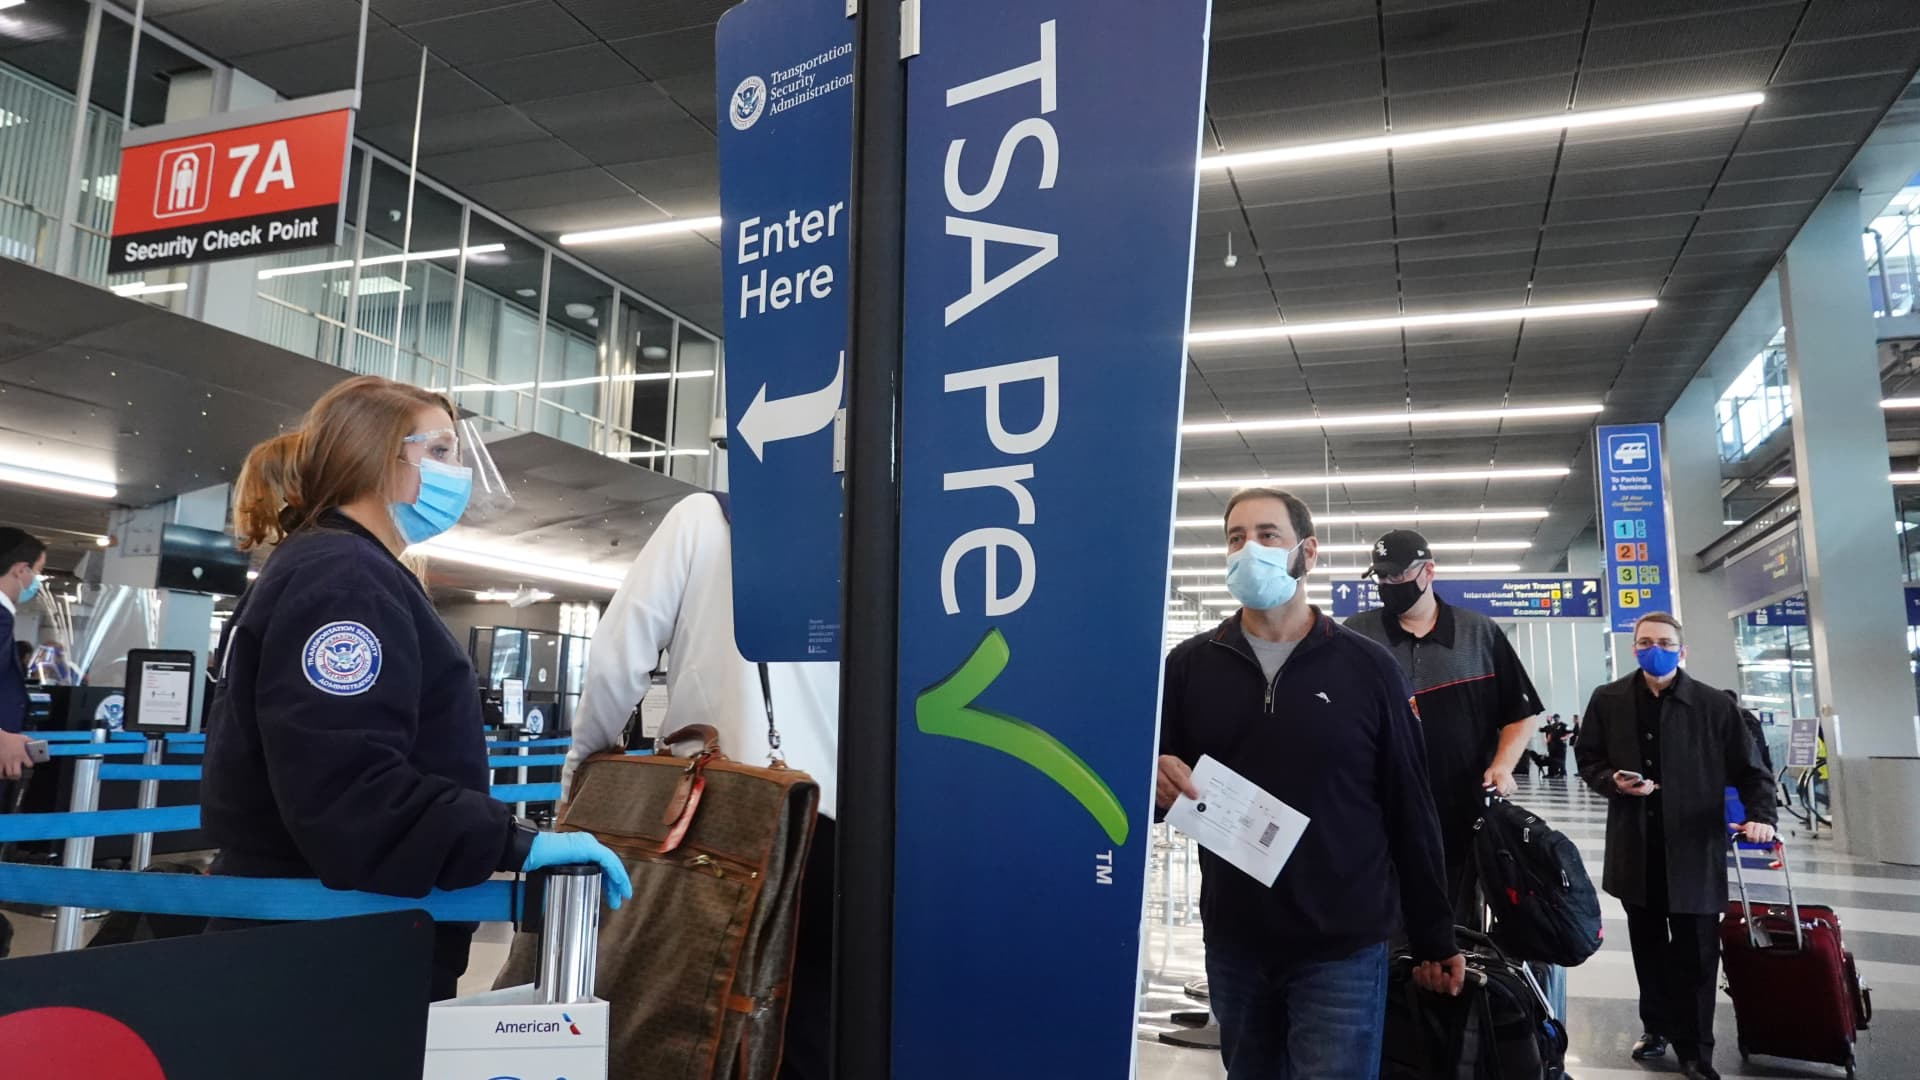 Passengers enter a Transportation Security Administration (TSA) checkpoint at O'Hare International Airport on October 19, 2020 in Chicago, Illinois.